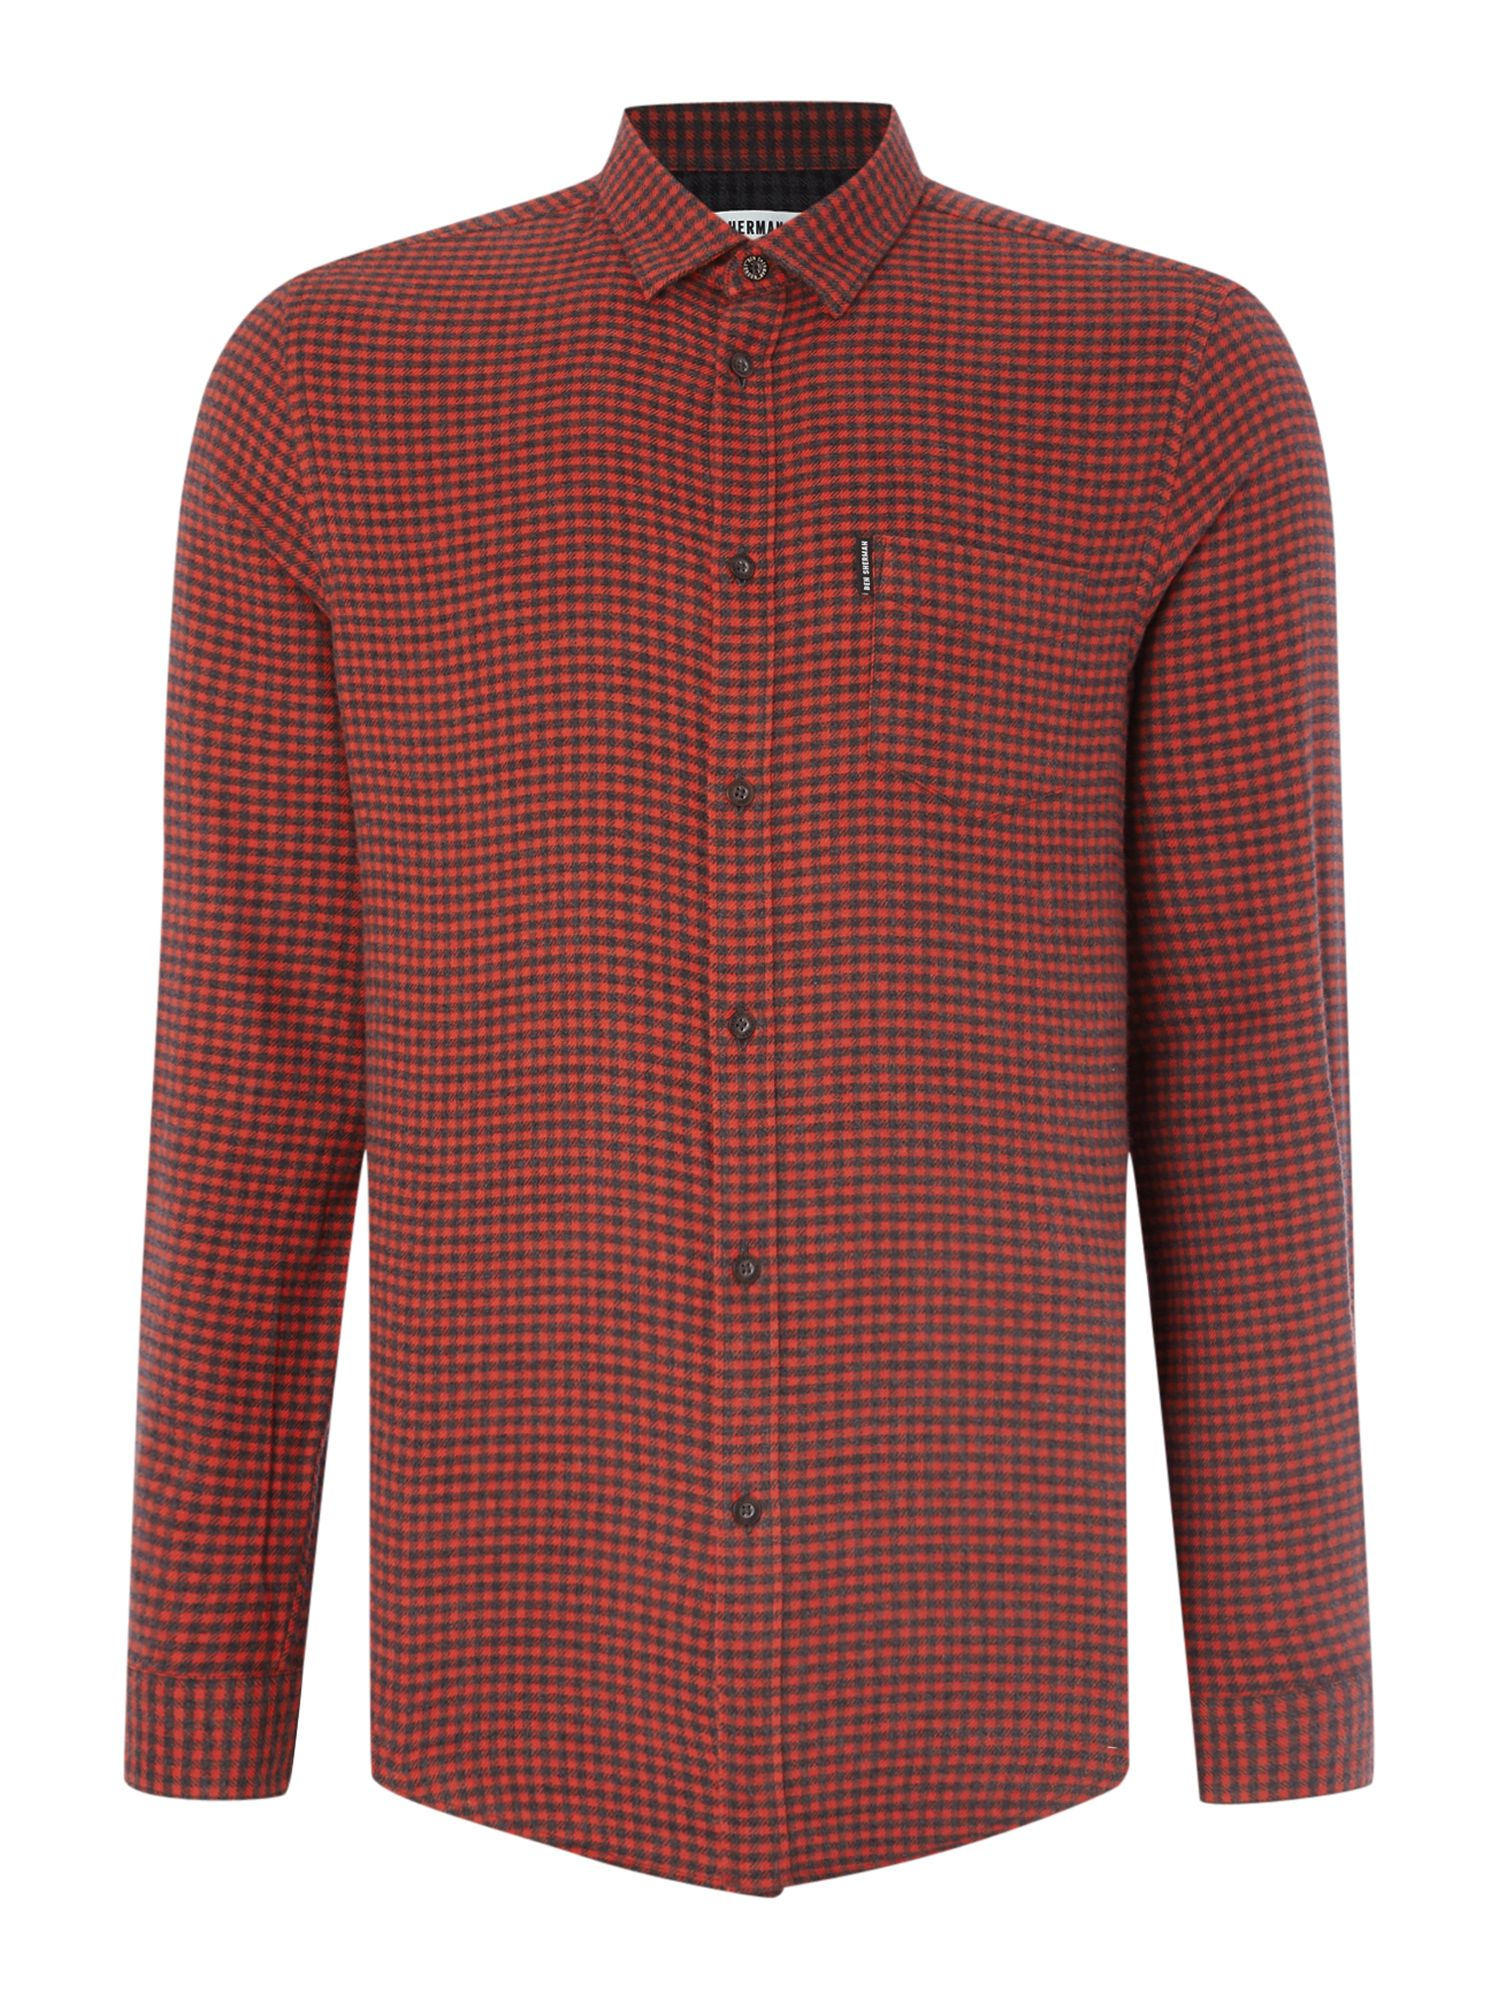 Ben sherman brushed gingham twill long sleeve shirt in for Brushed cotton twill shirt